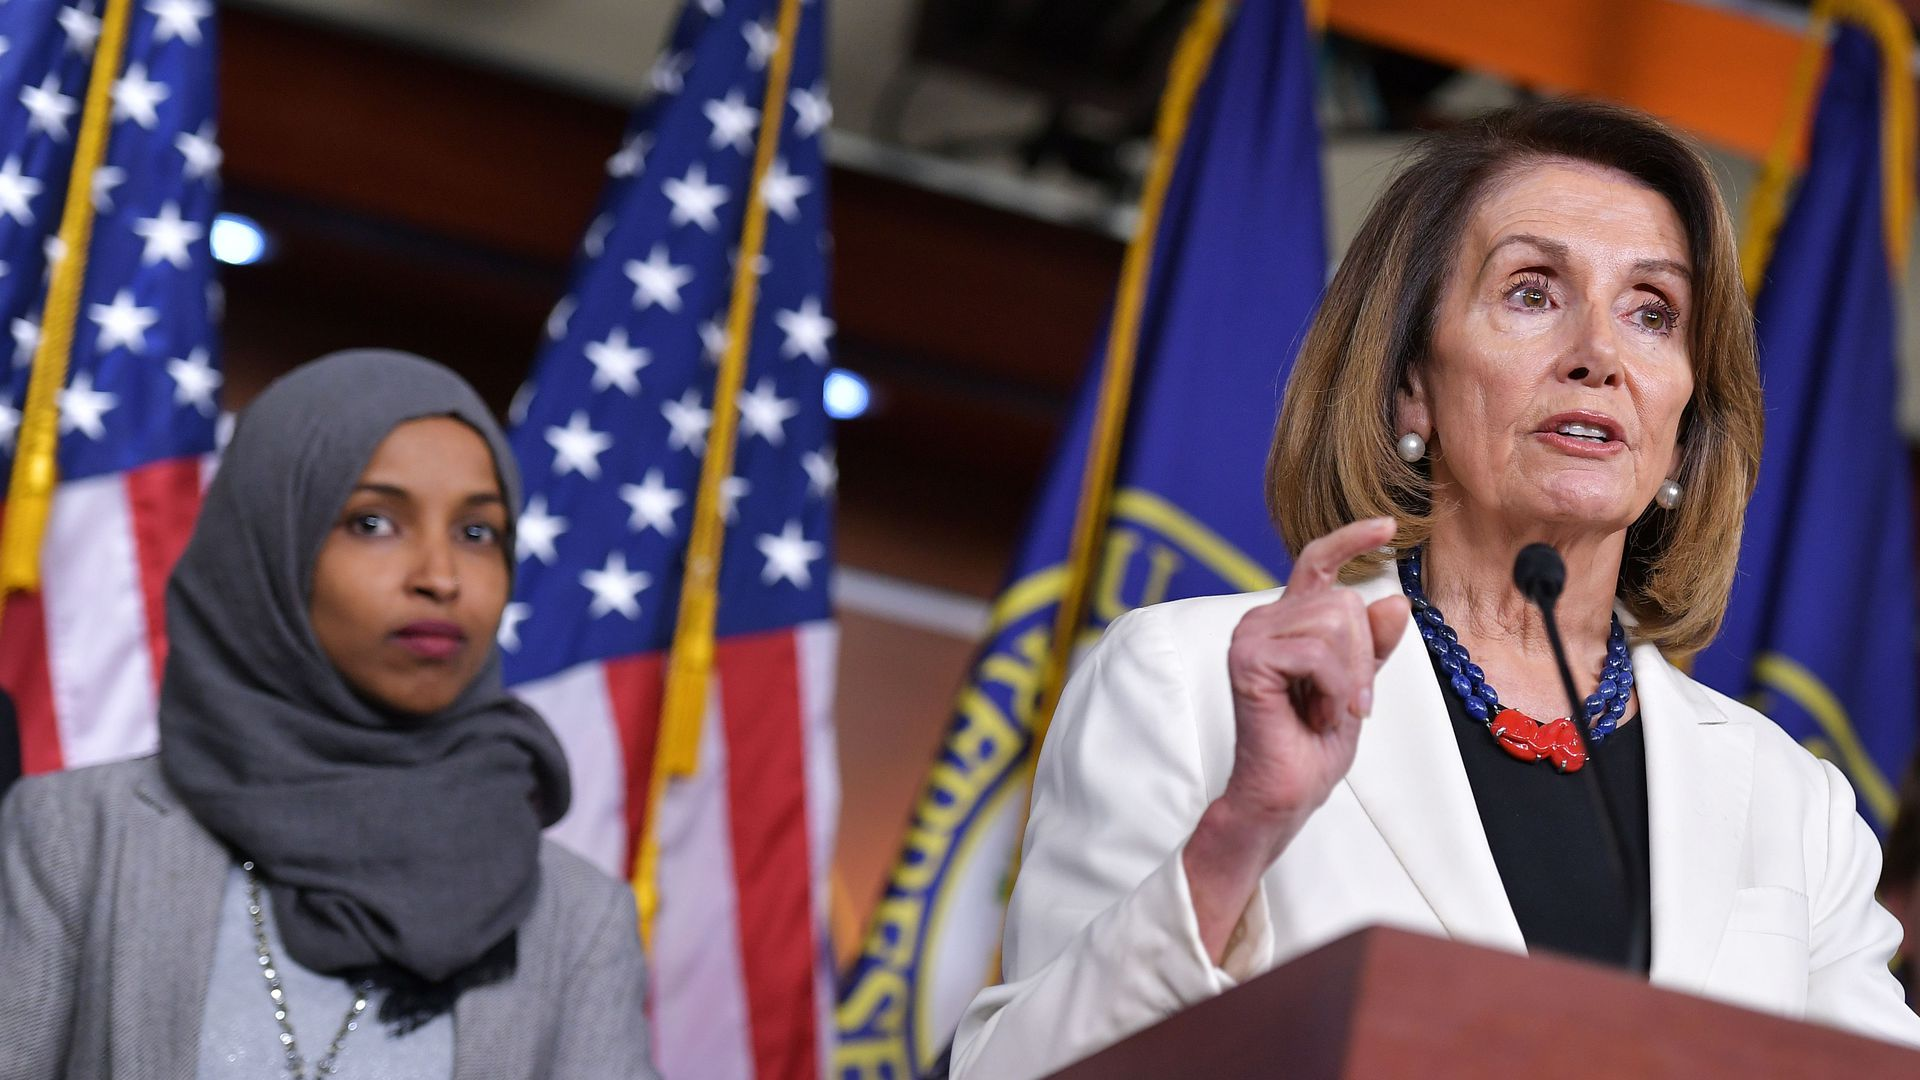 Nancy Pelosi spoke out against President Trump's retweet of an Ilhan Omar video.